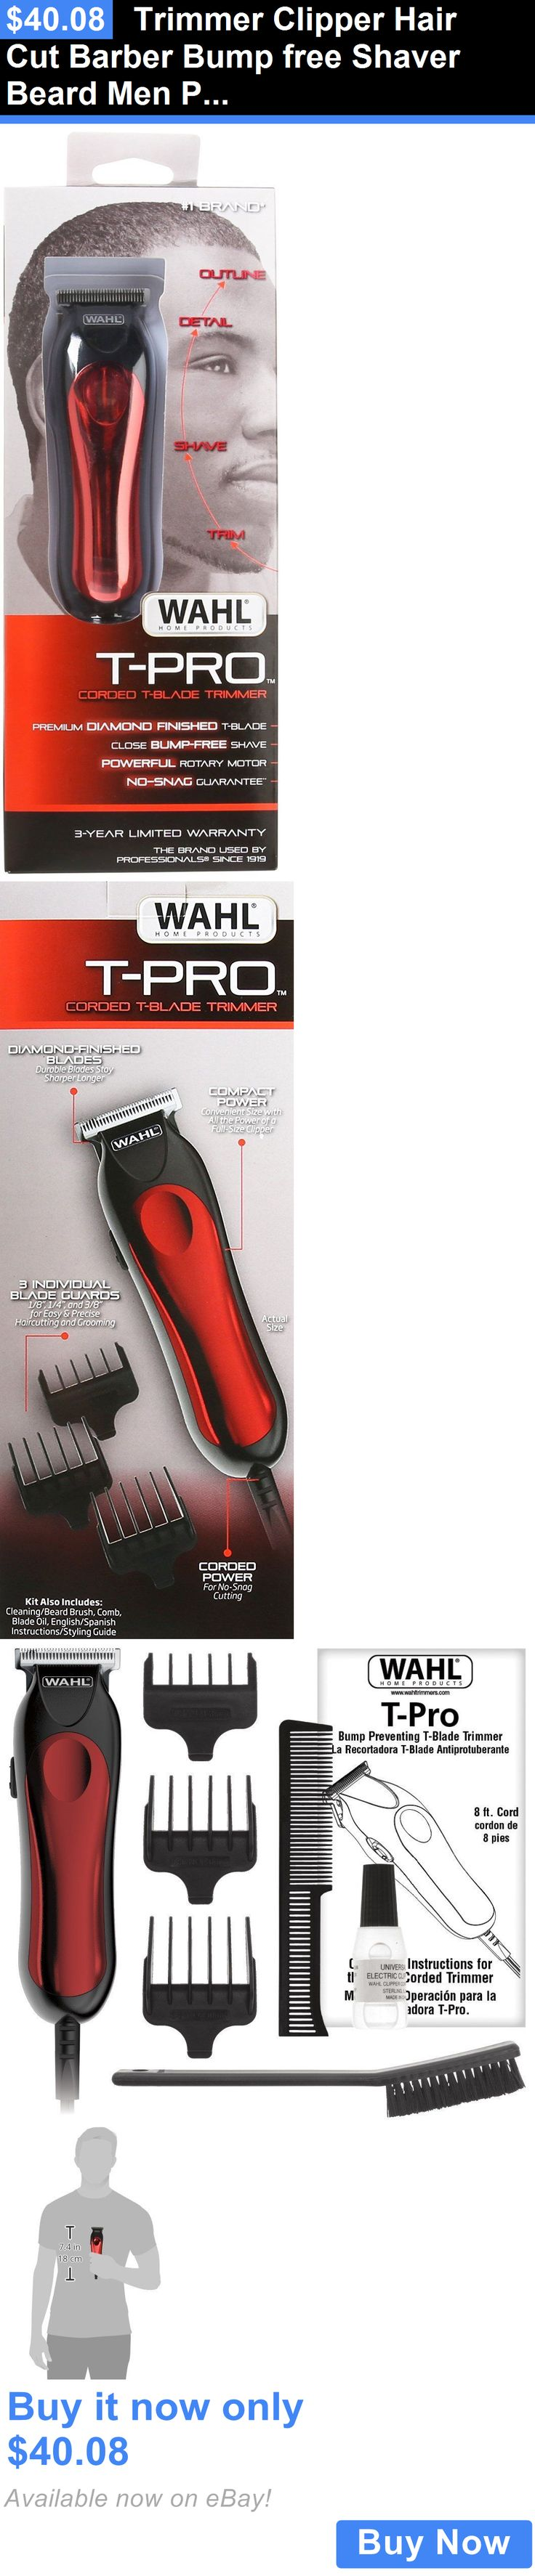 Shaving: Trimmer Clipper Hair Cut Barber Bump Free Shaver Beard Men Professional Kit Body BUY IT NOW ONLY: $40.08